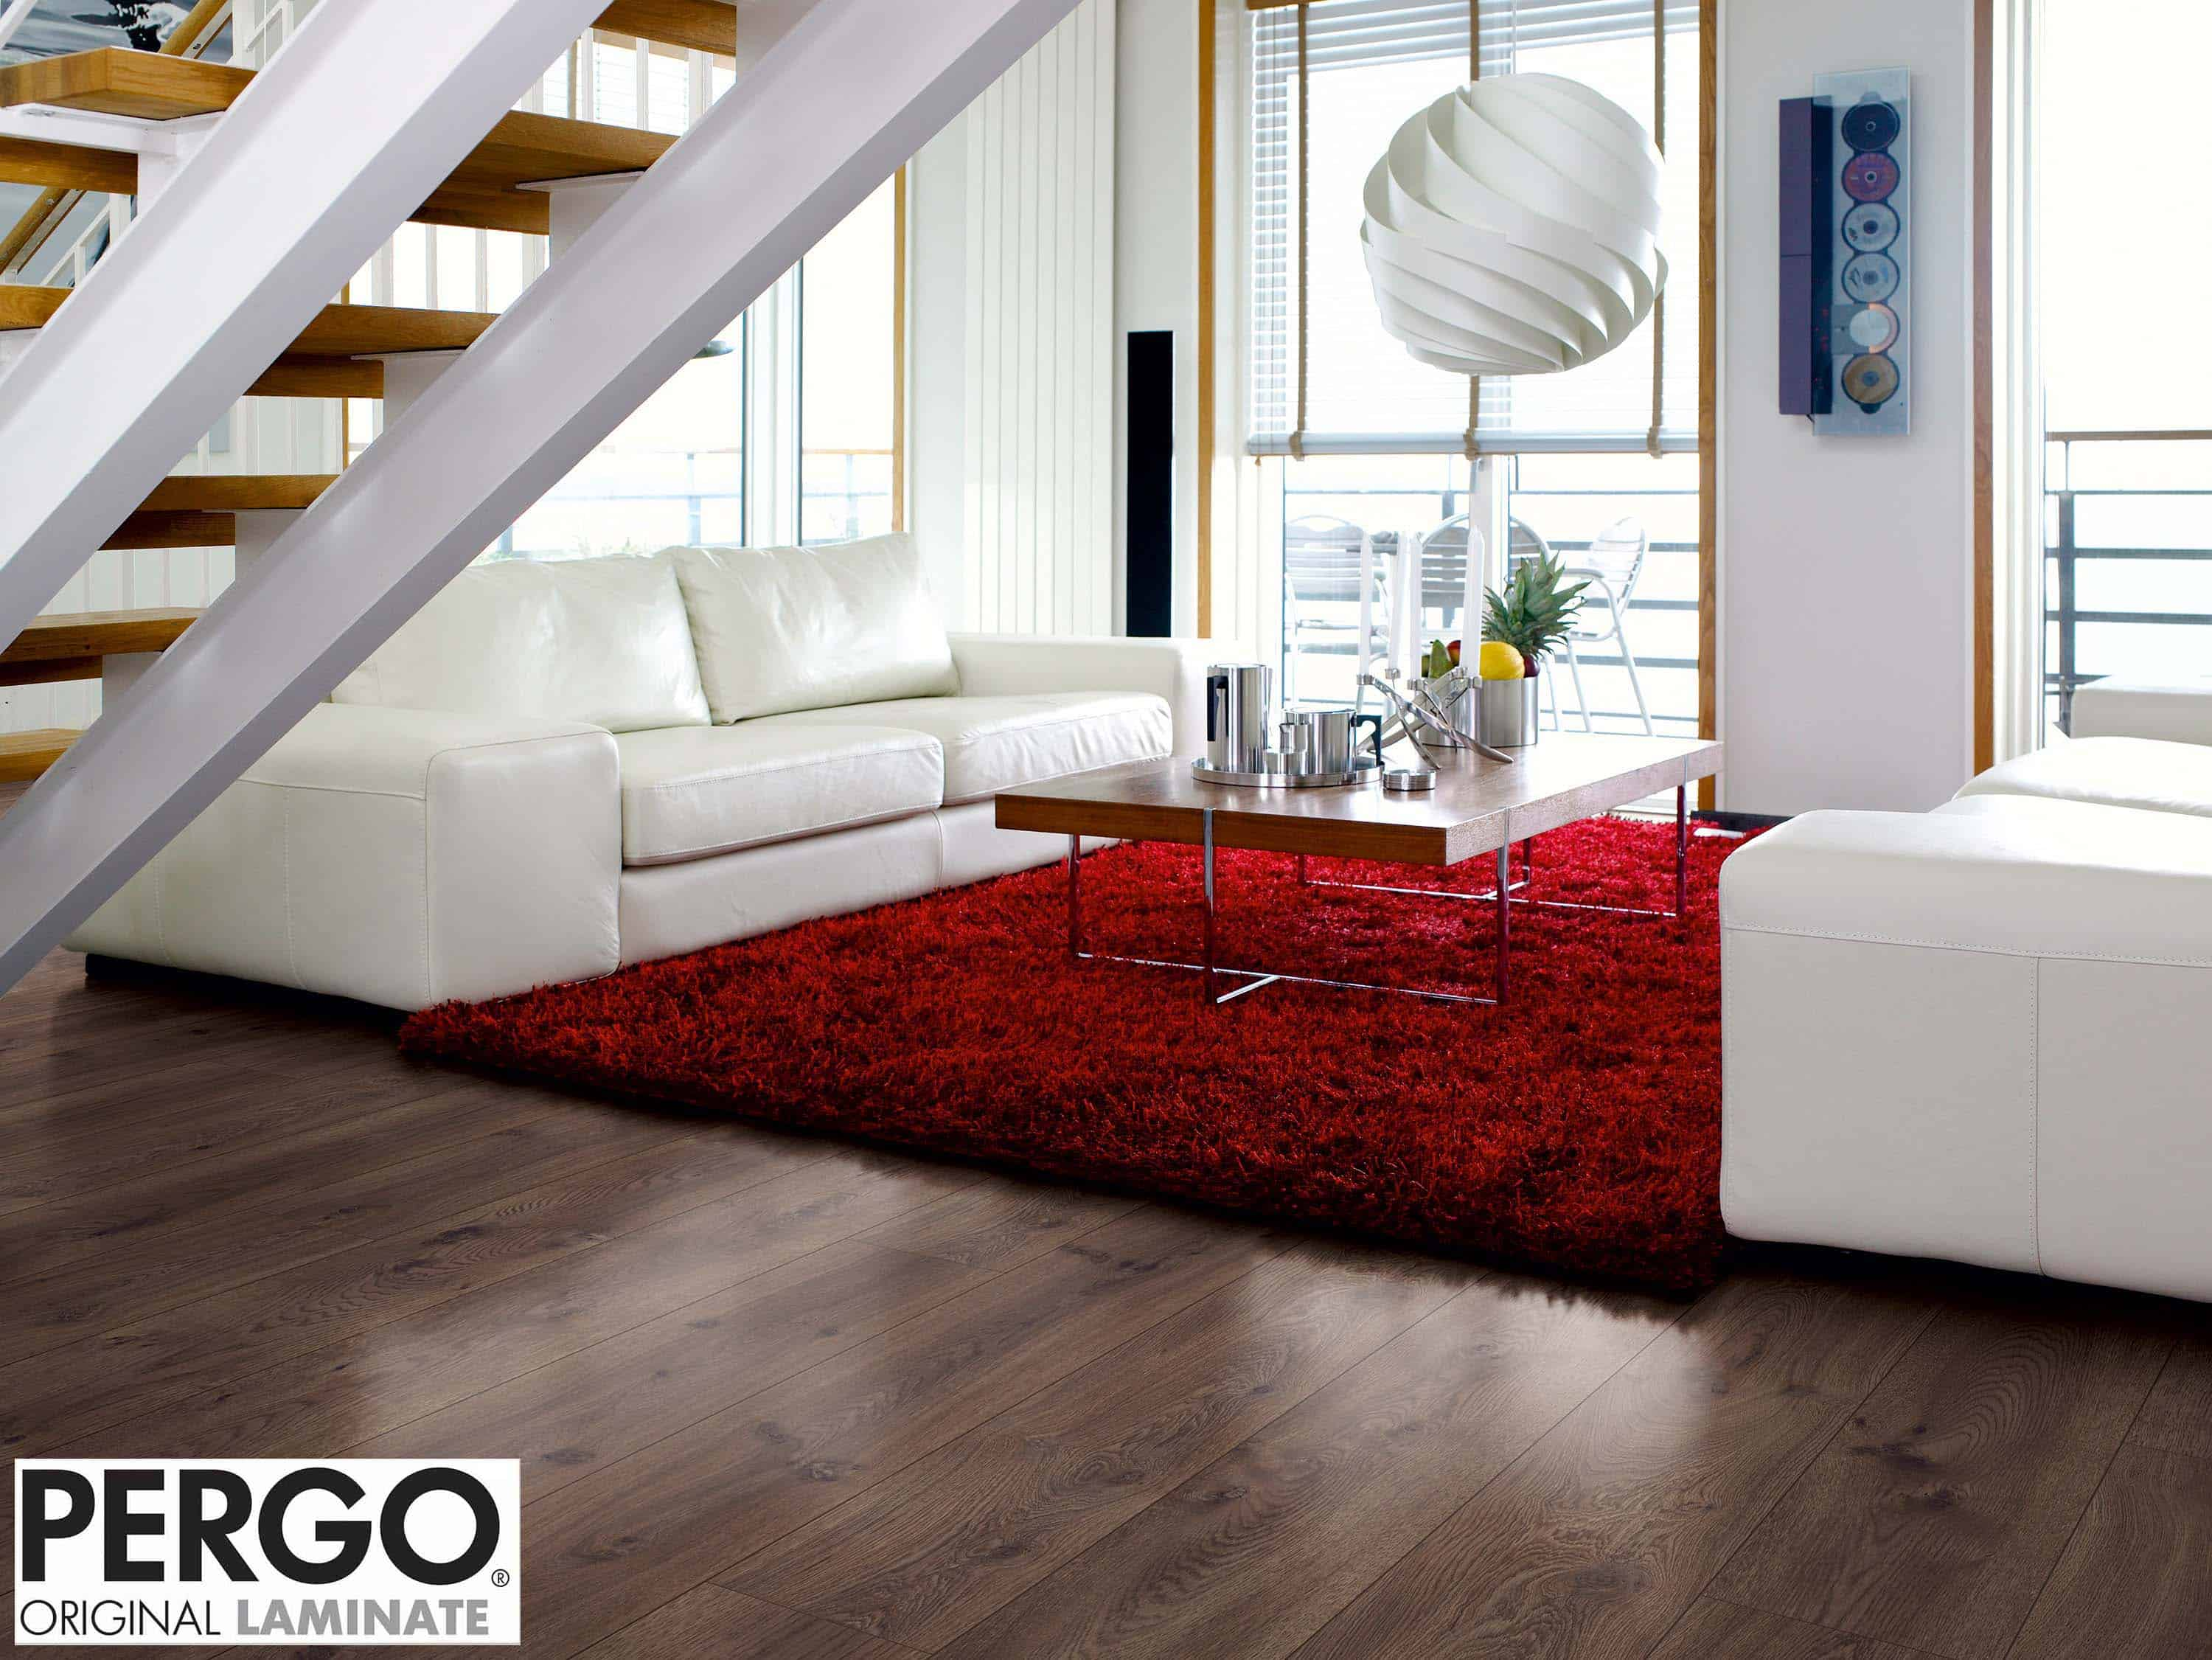 Pergo living expression collection